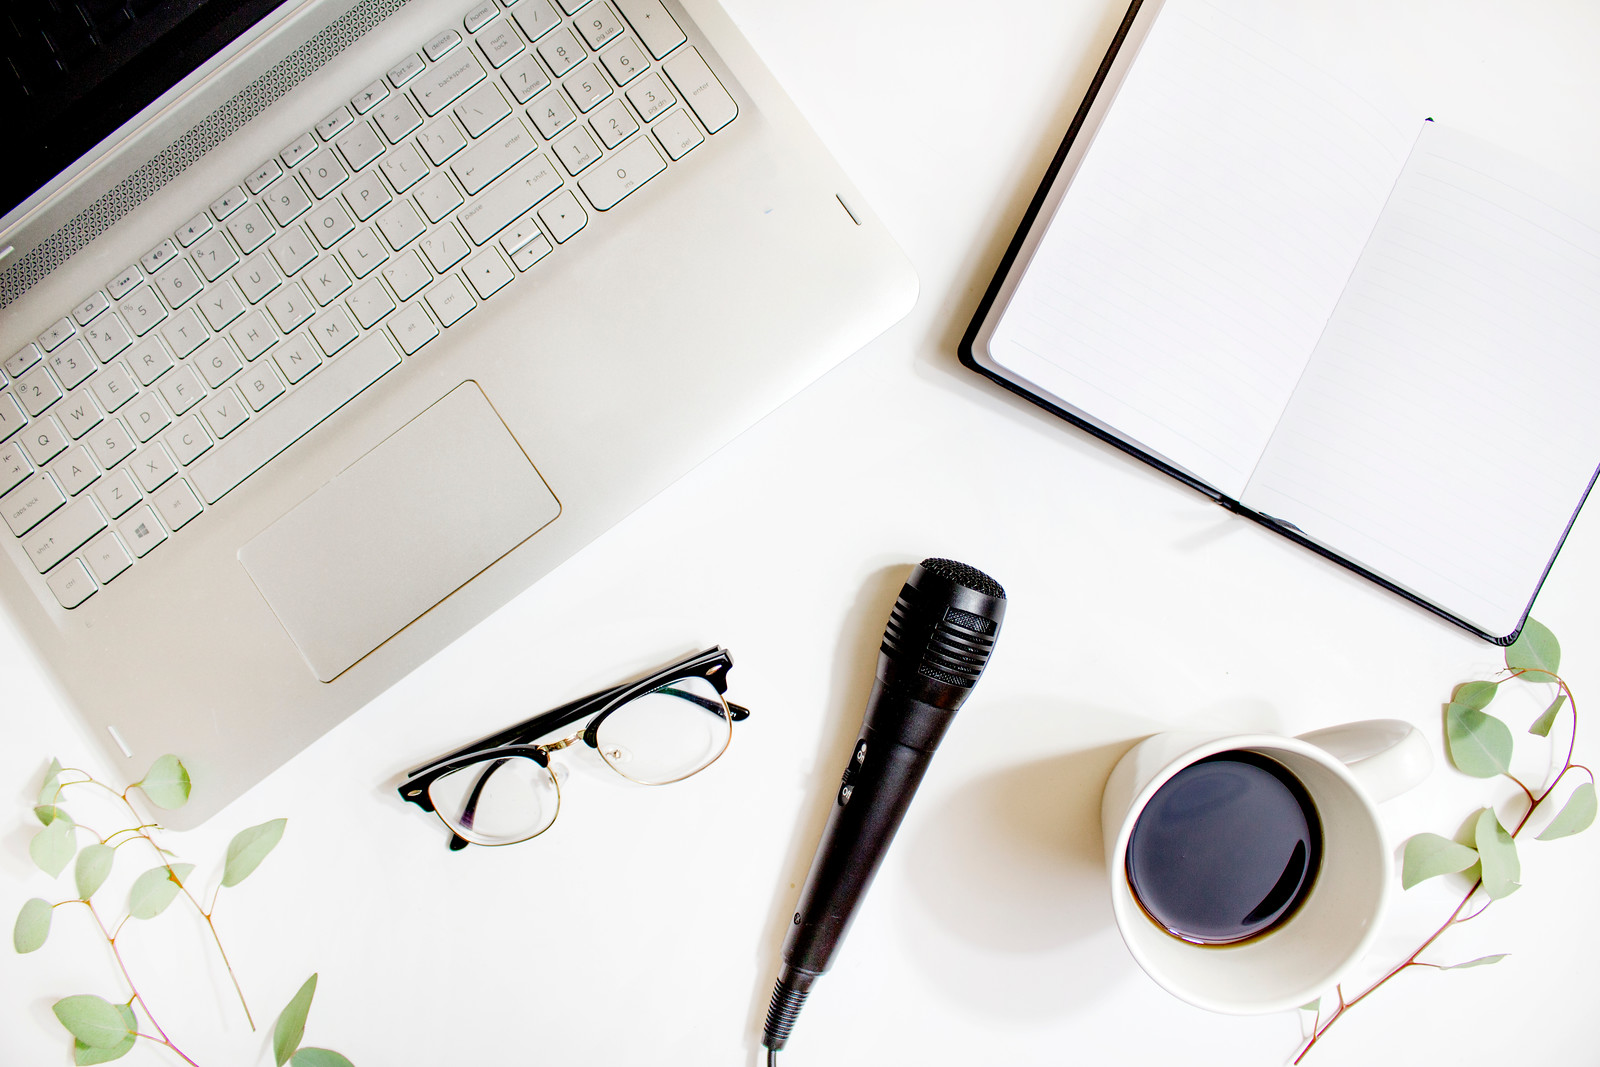 laptop, glasses, microphone, notebook, cup of coffee